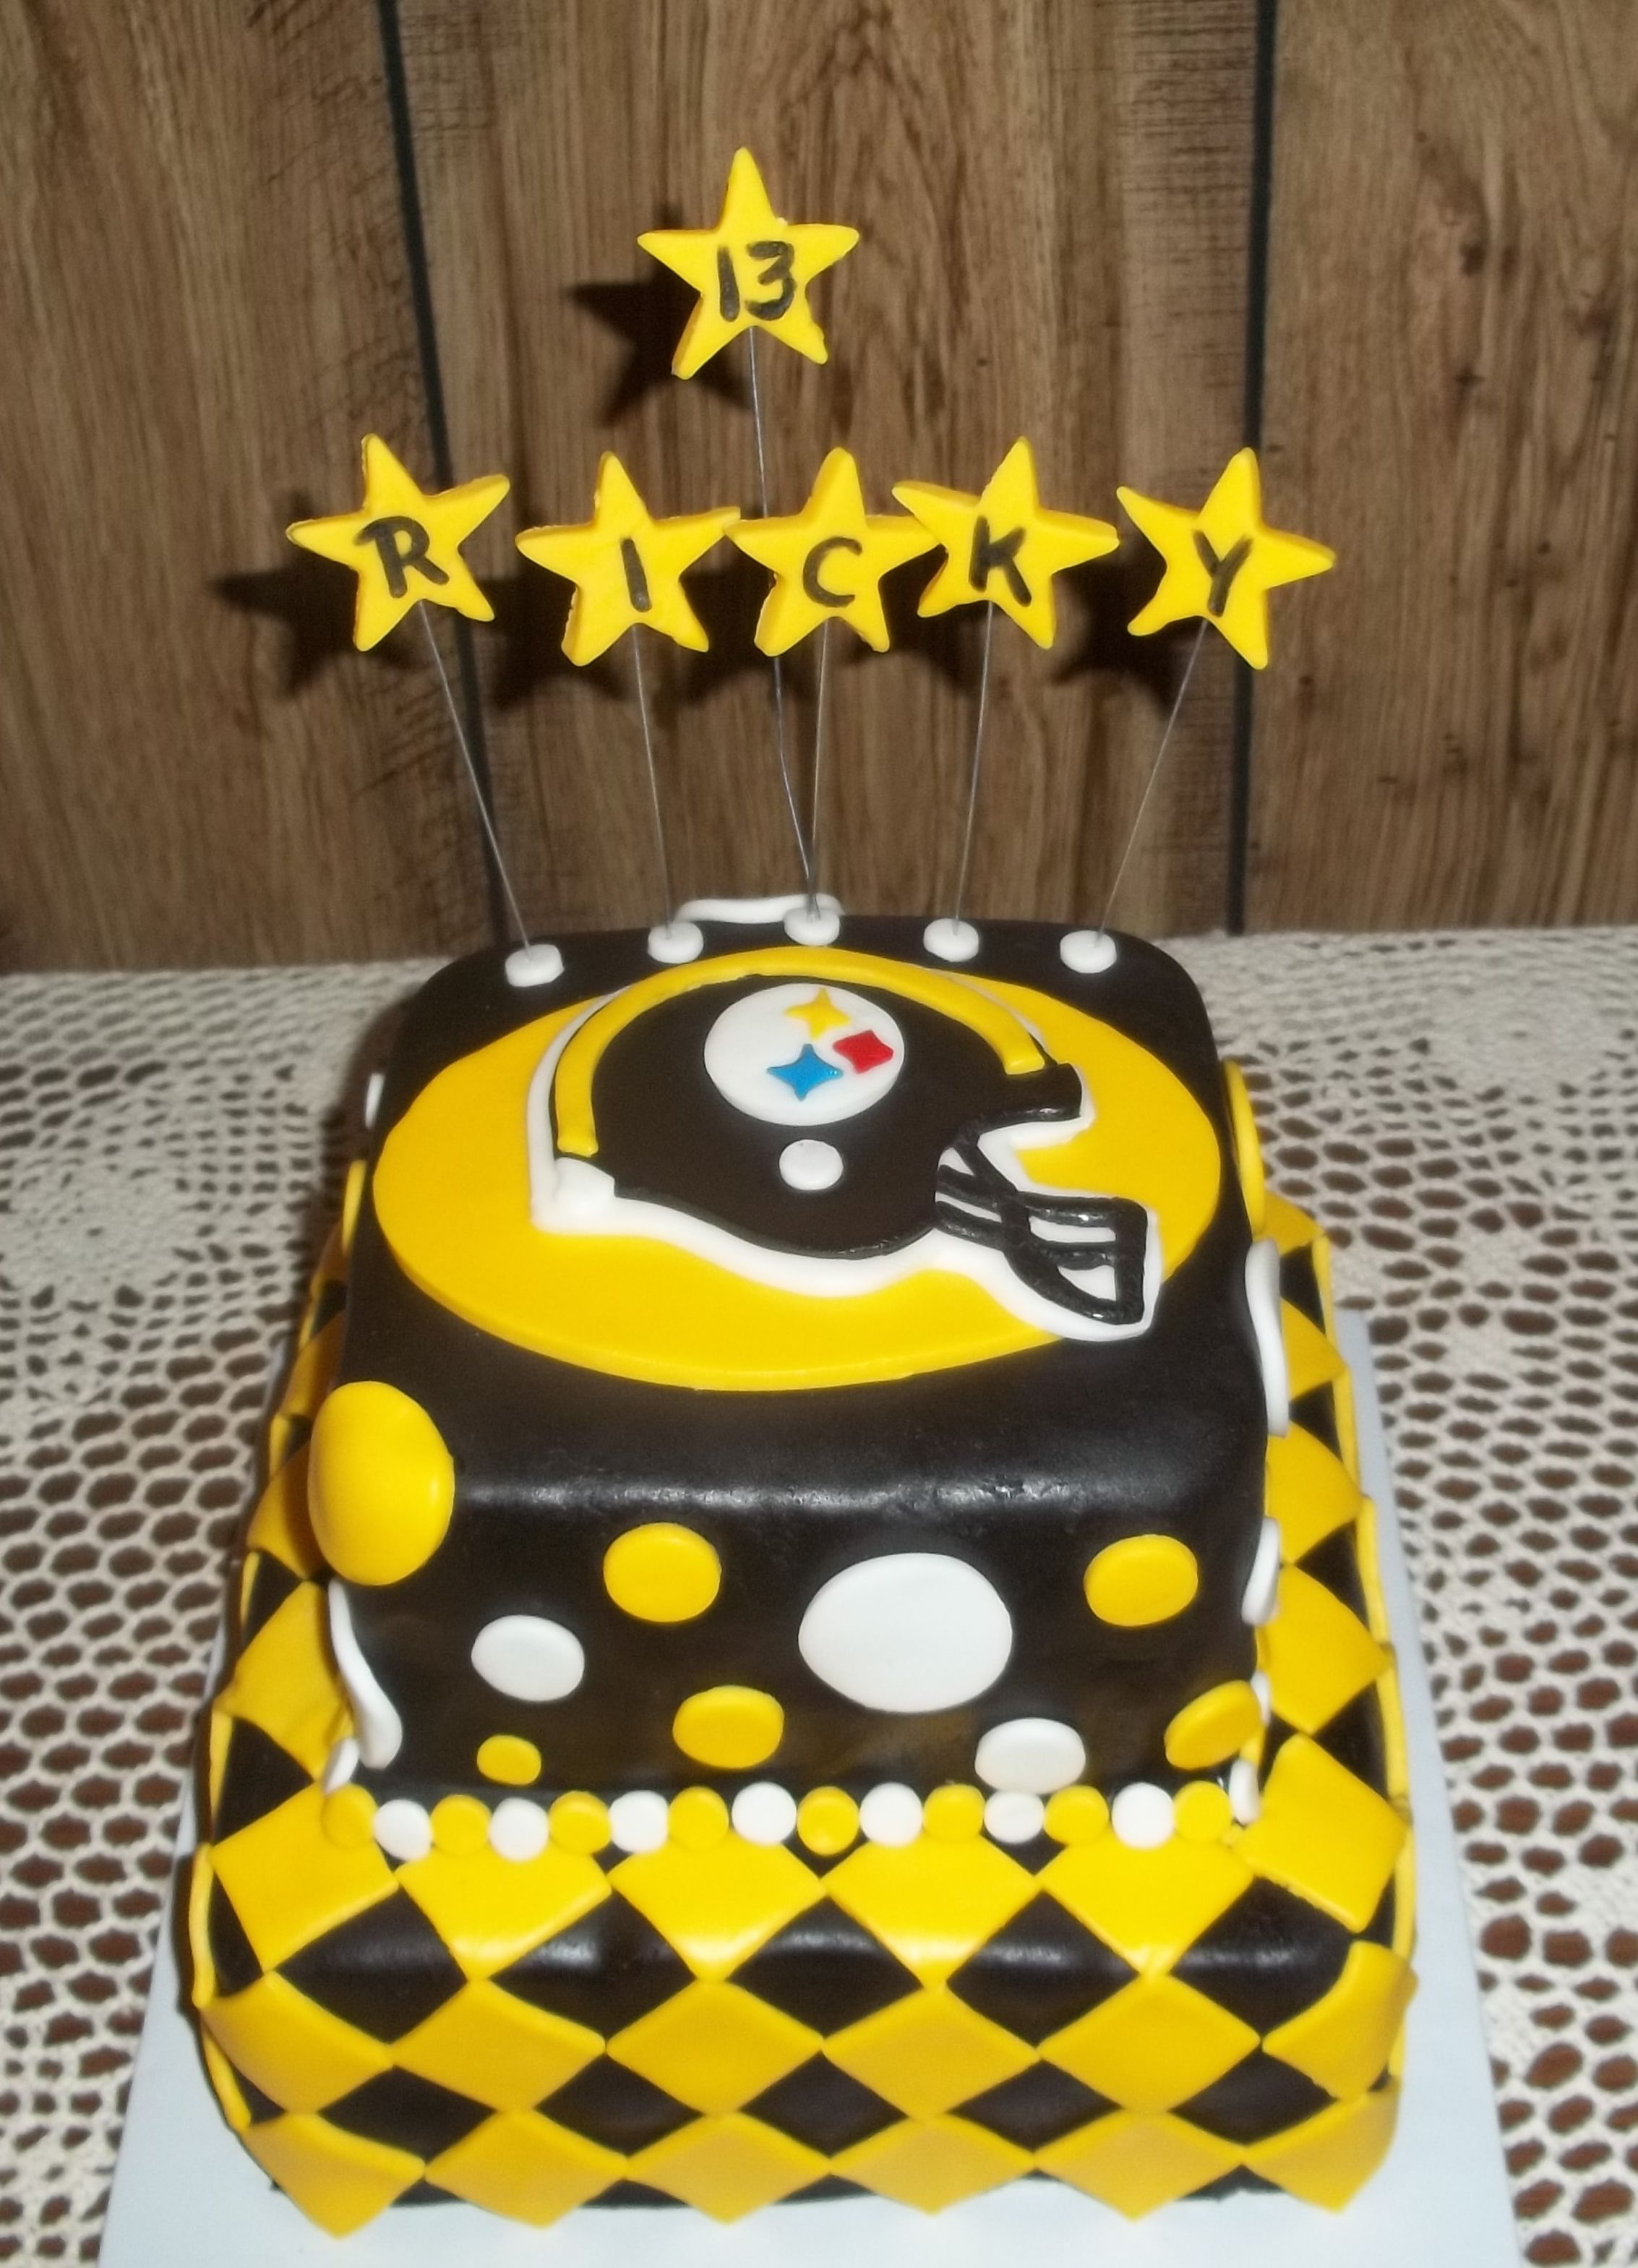 Pittsburgh Steelers Birthday Cake Grandma Bettys Bakery Delights